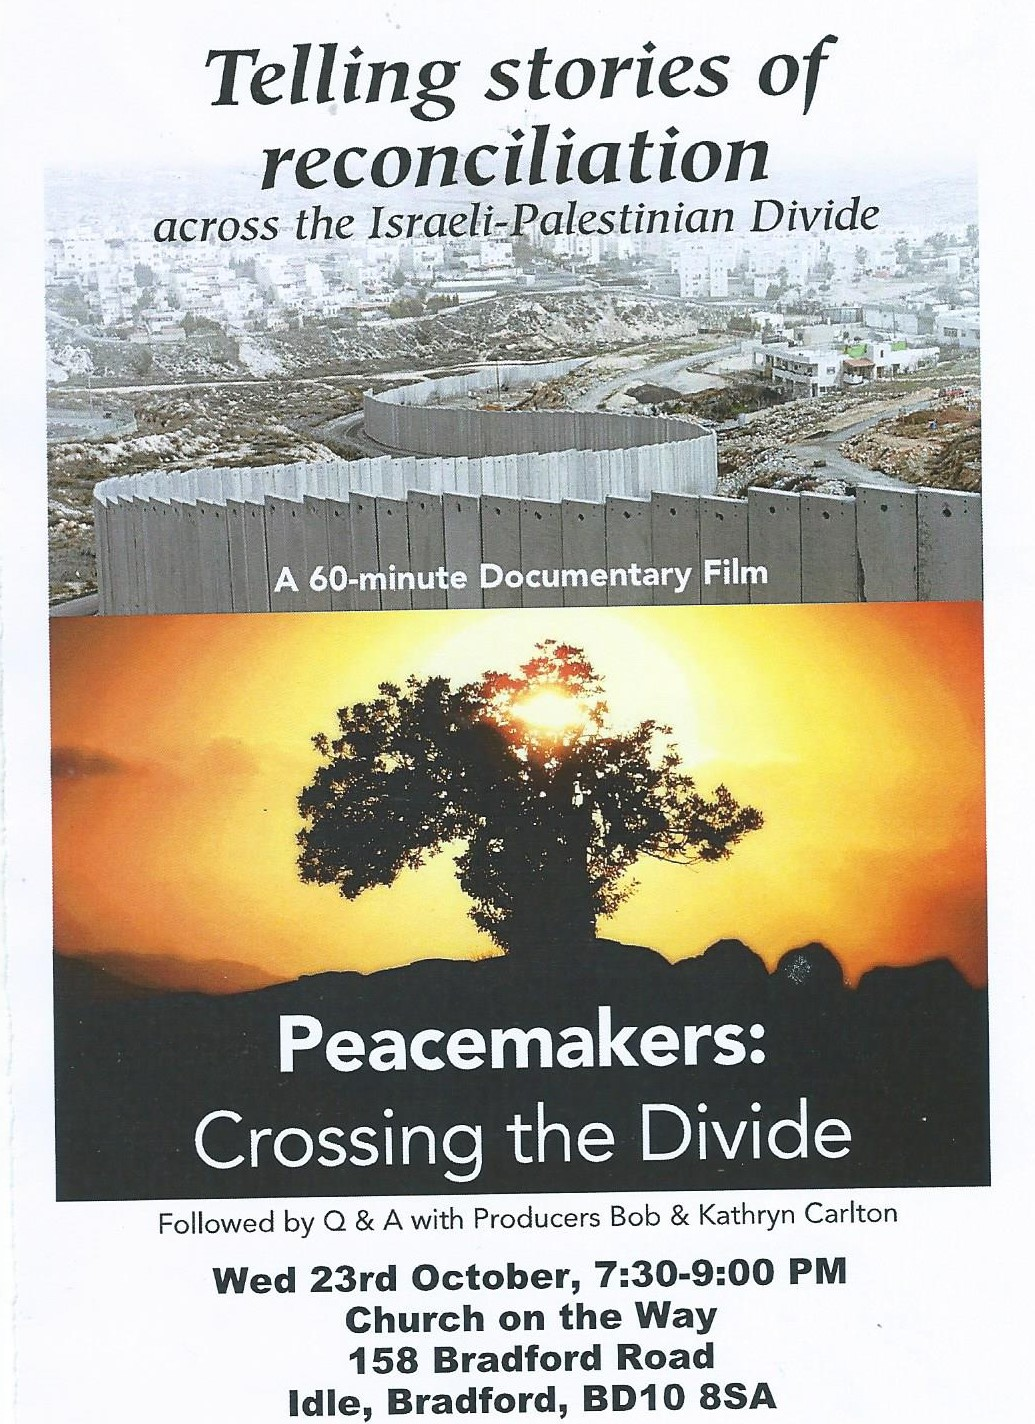 FILM NIGHT: 'The Peacemakers' - Across the Israeli-Palestinian Divide